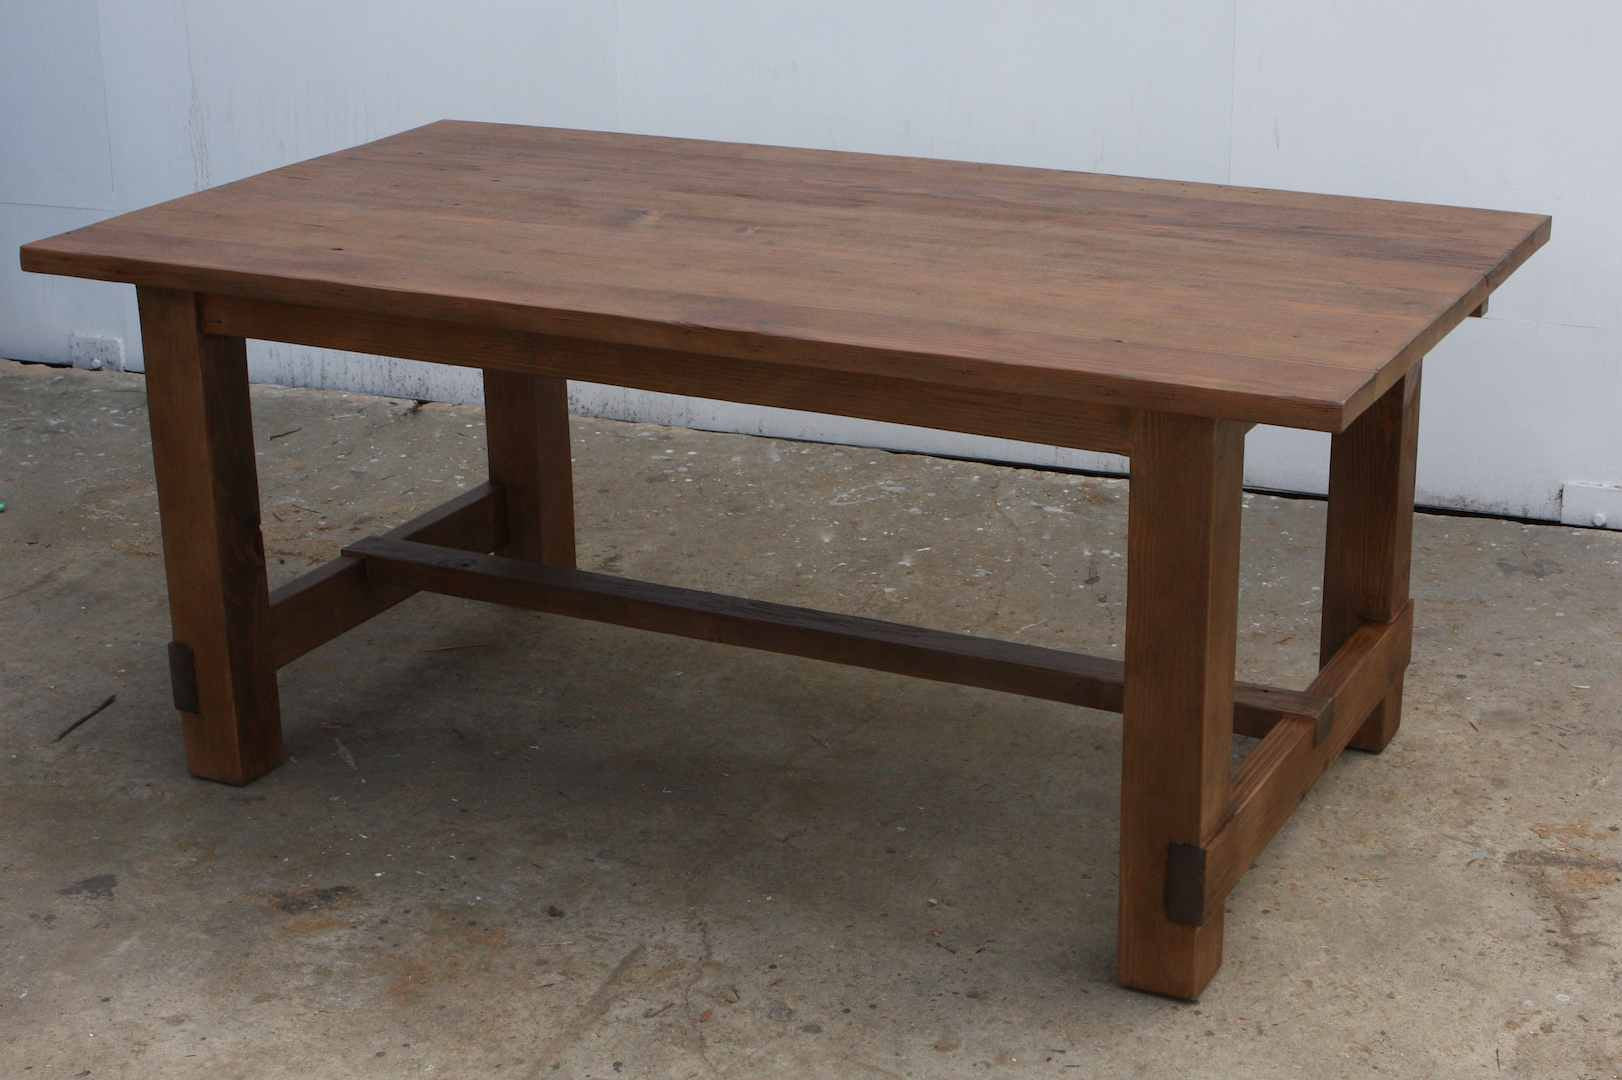 New England Farm Table This Table Is Shown With 2 18